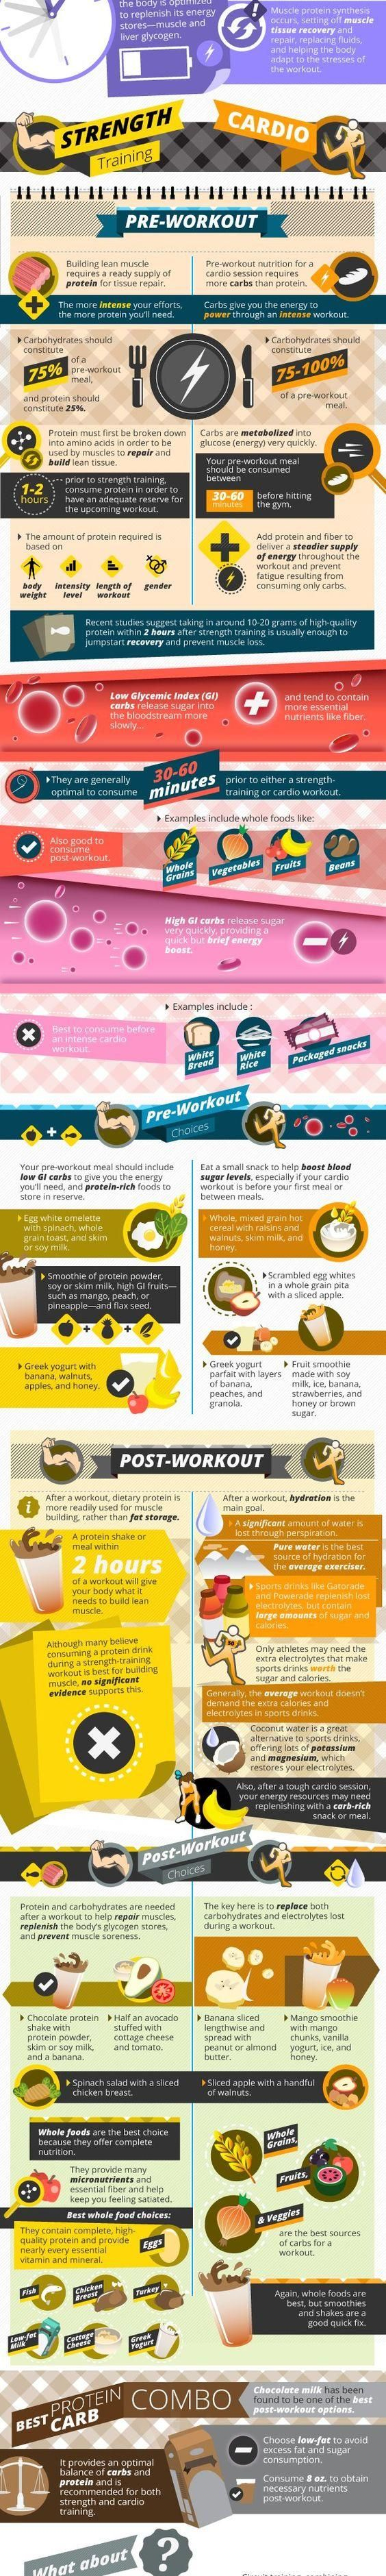 Do You want to lose 10 pounds in a week? Try this simple and effective diet! http://enle.info/Lose10PoundsWeek